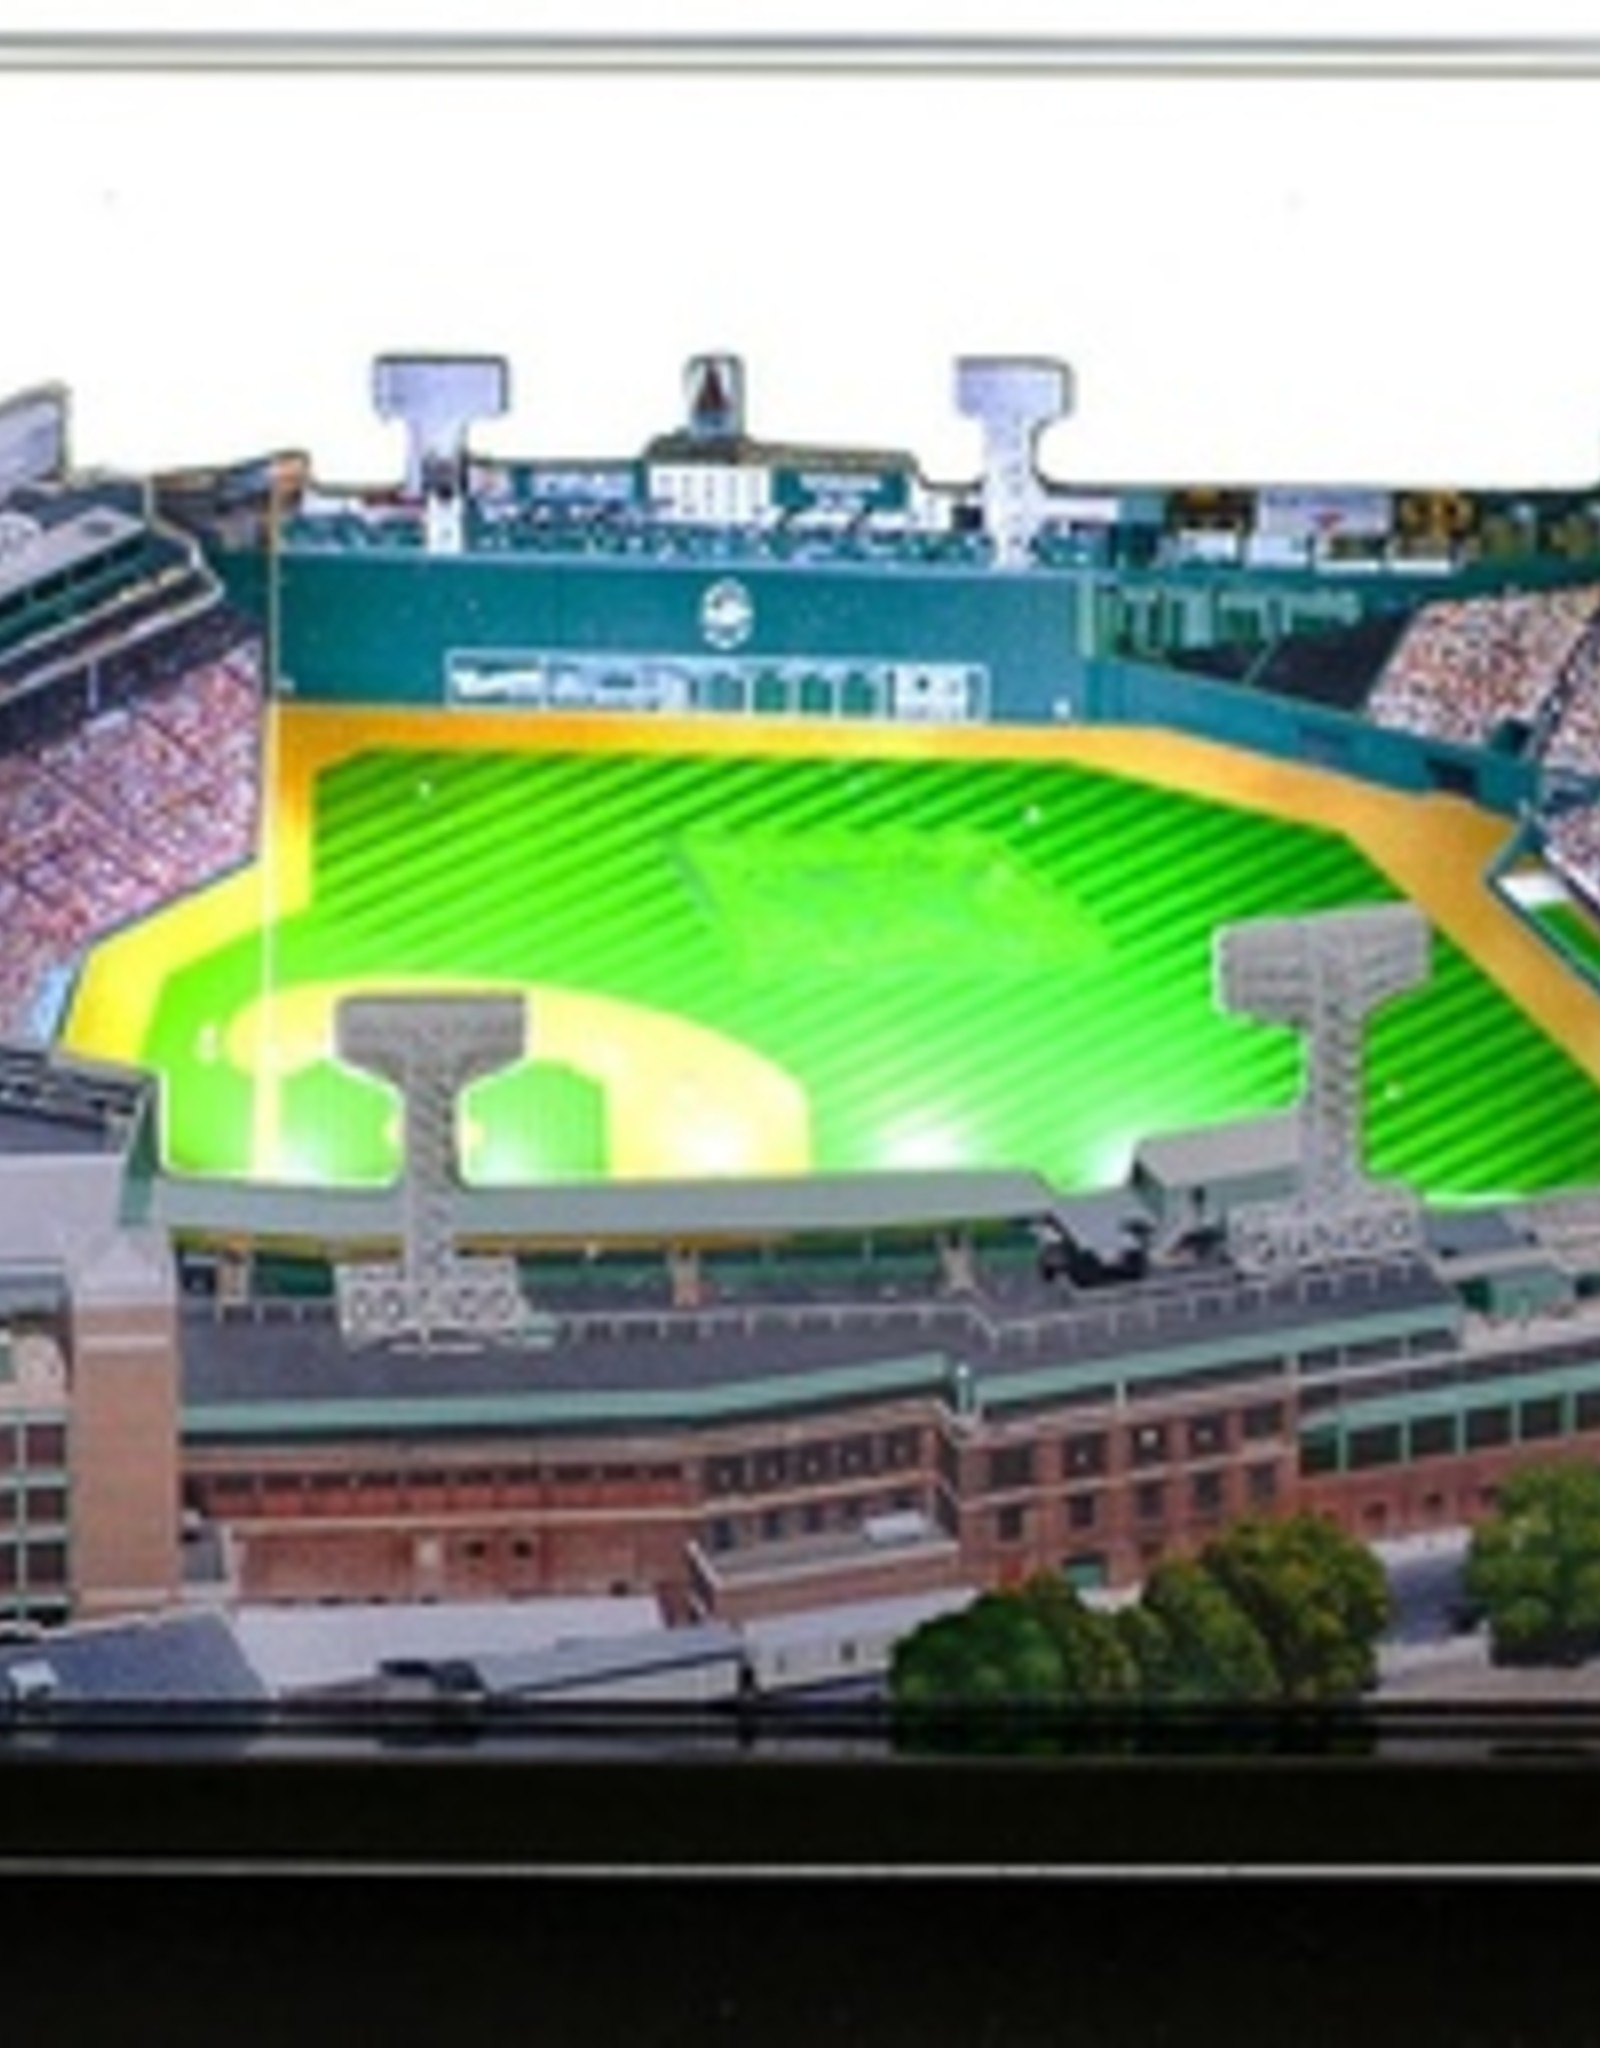 HOMEFIELDS Boston Red Sox 13IN Lighted Replica Fenway Park